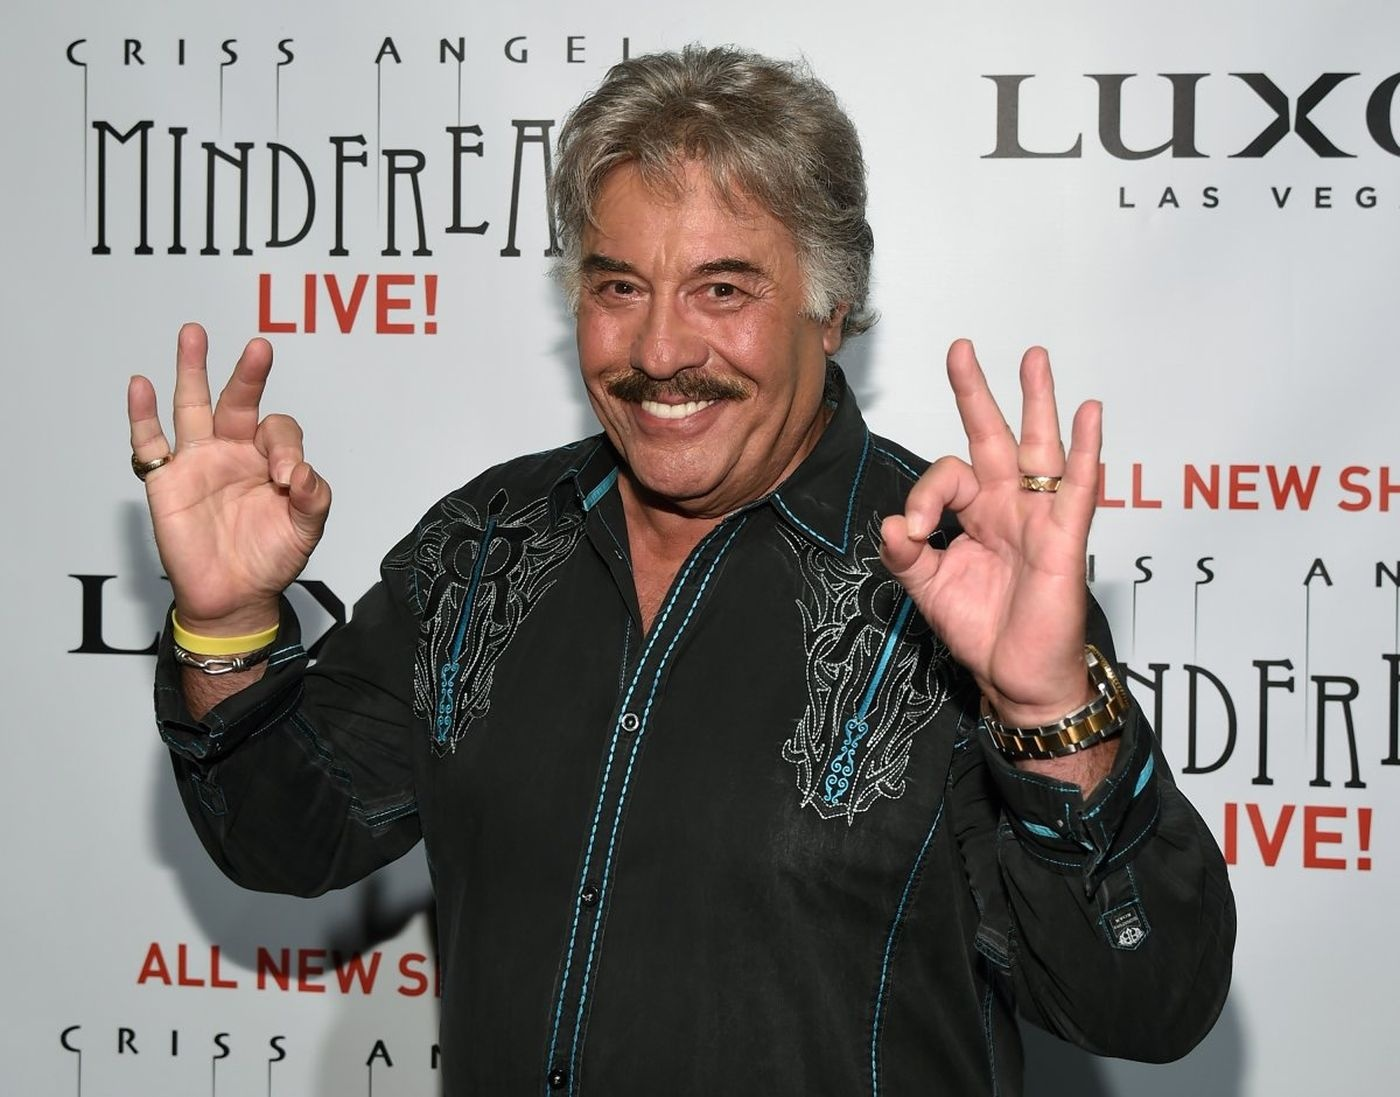 Tony Orlando before he was maimed by his garage door and could still play the piano.